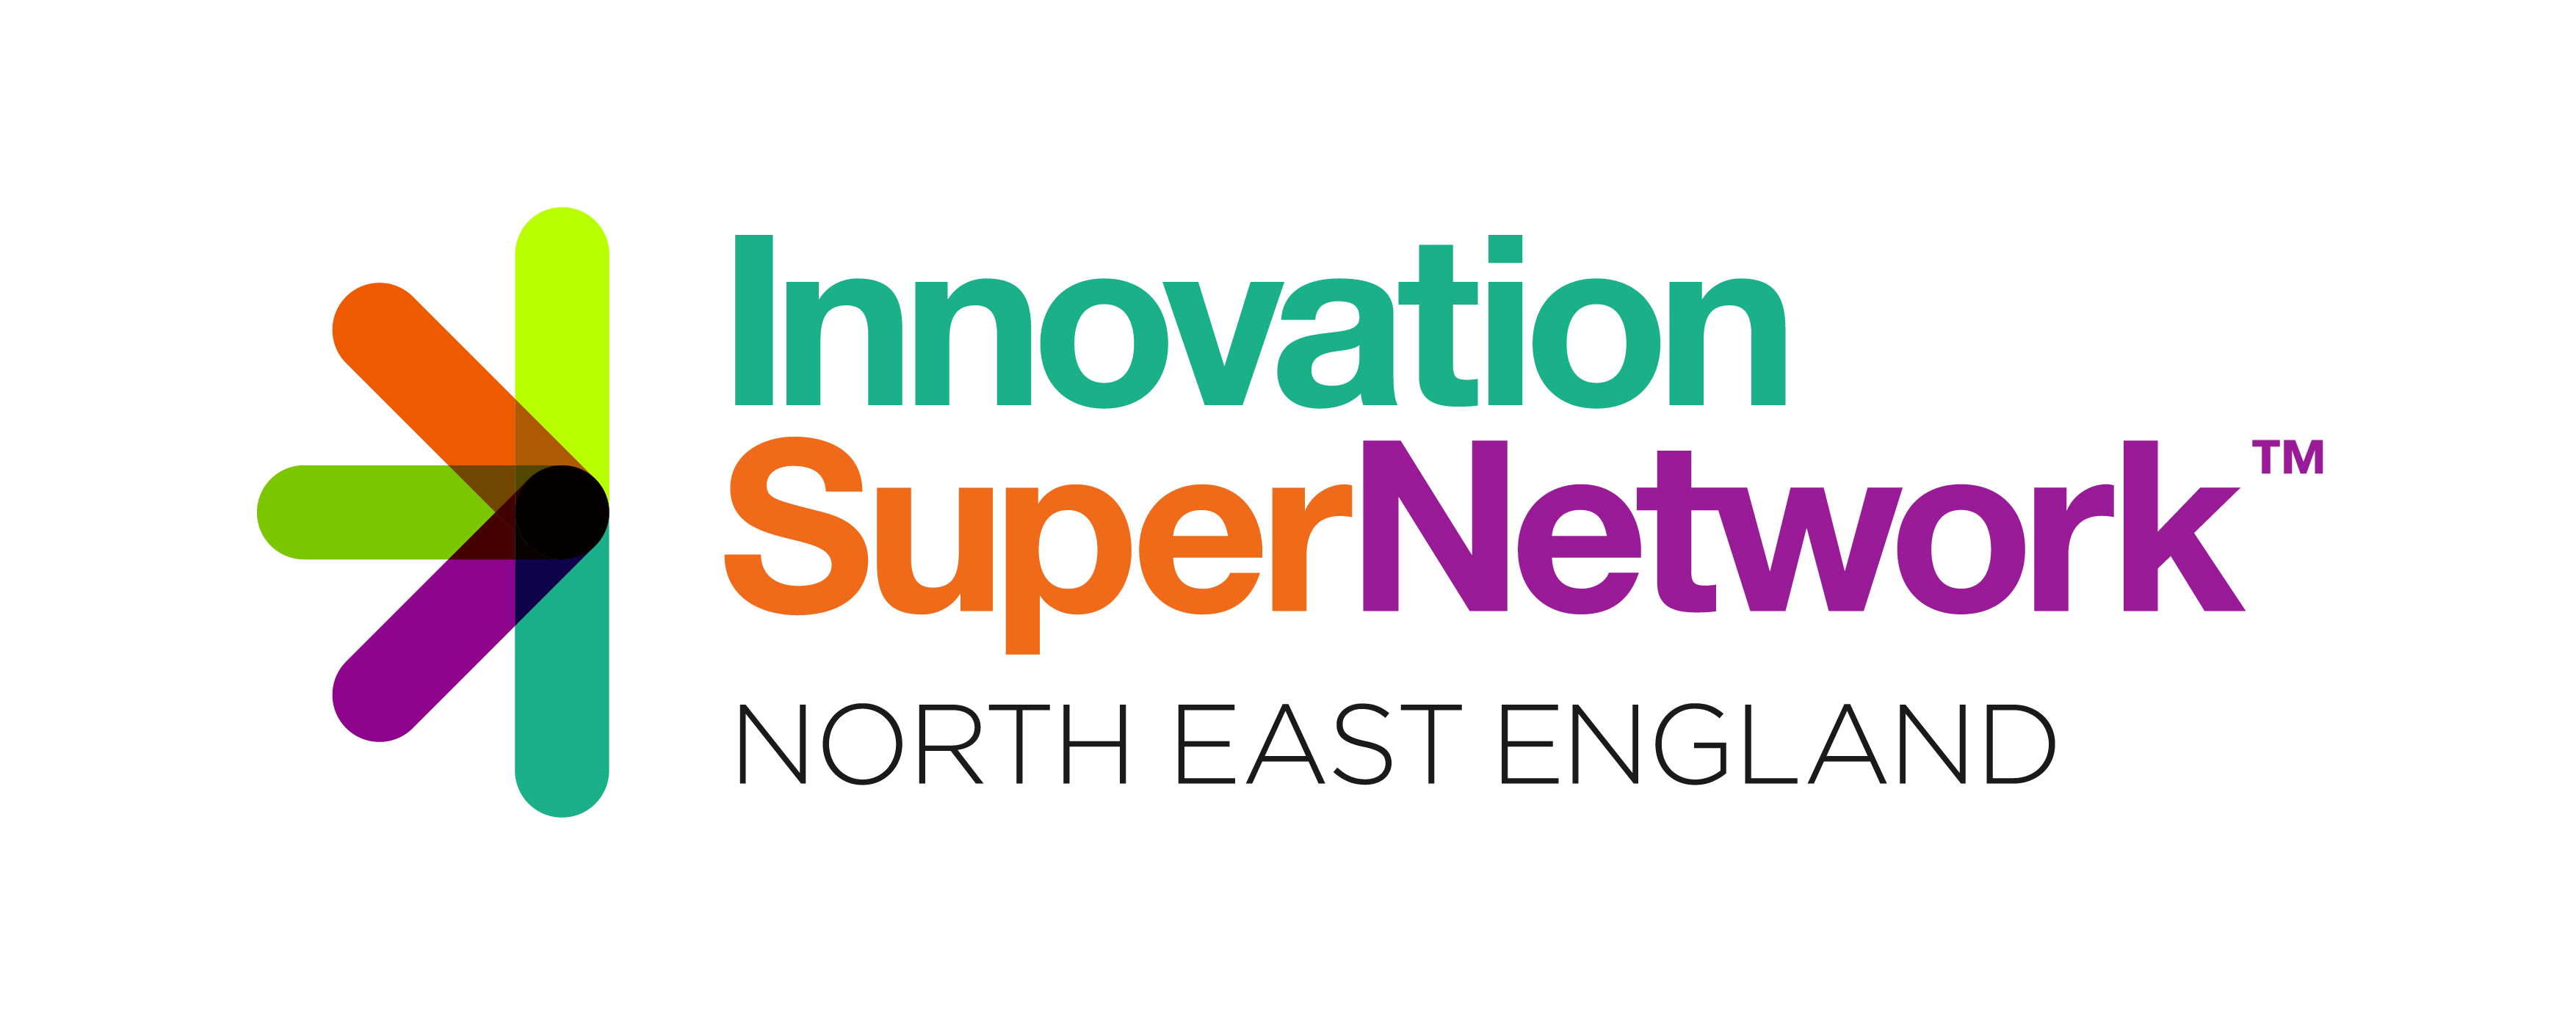 H20 - Innovation Supernetwork